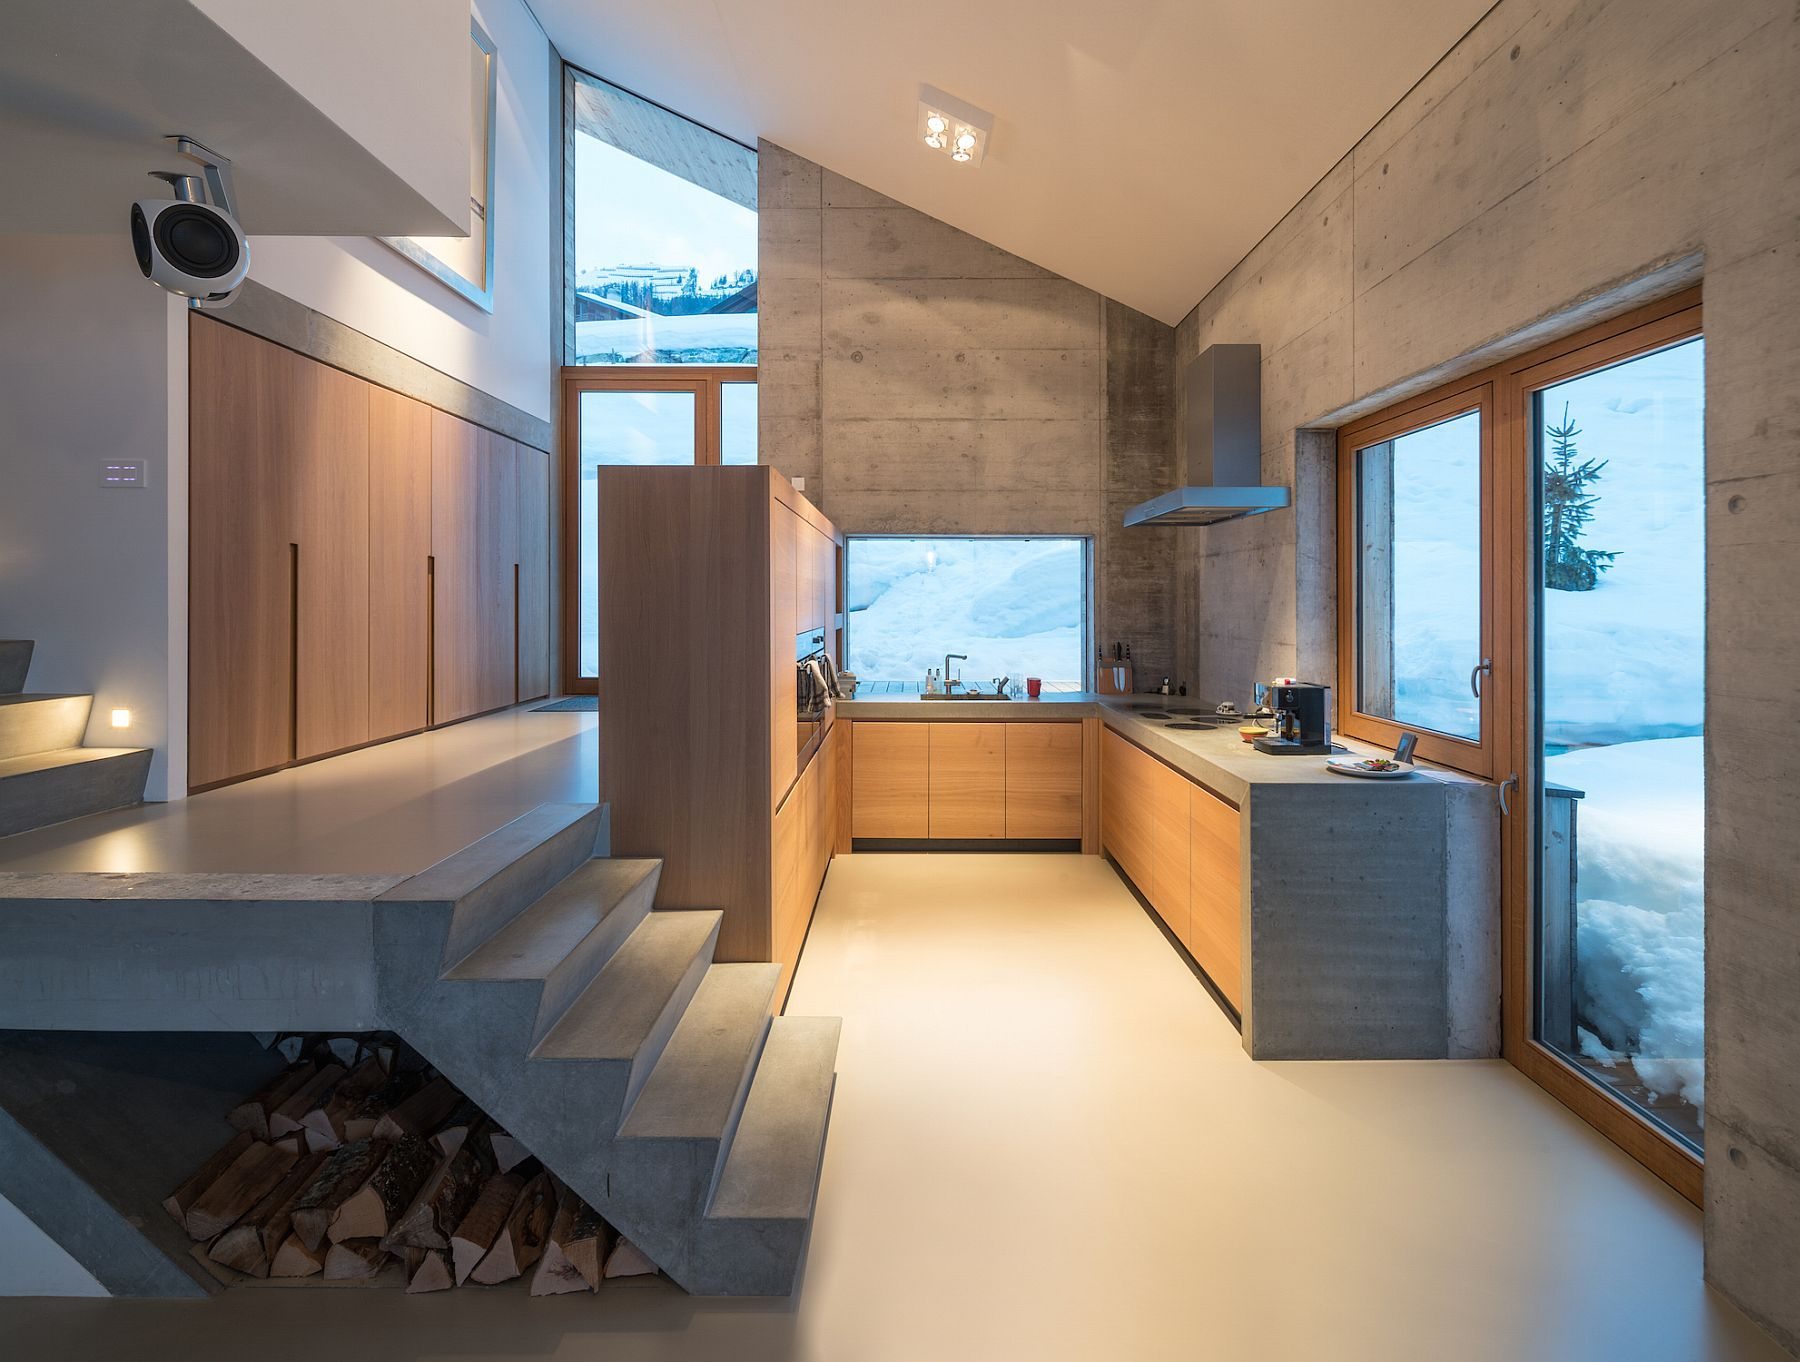 Exposed concrete and wood shape the interior of the contemporary Swiss chalet